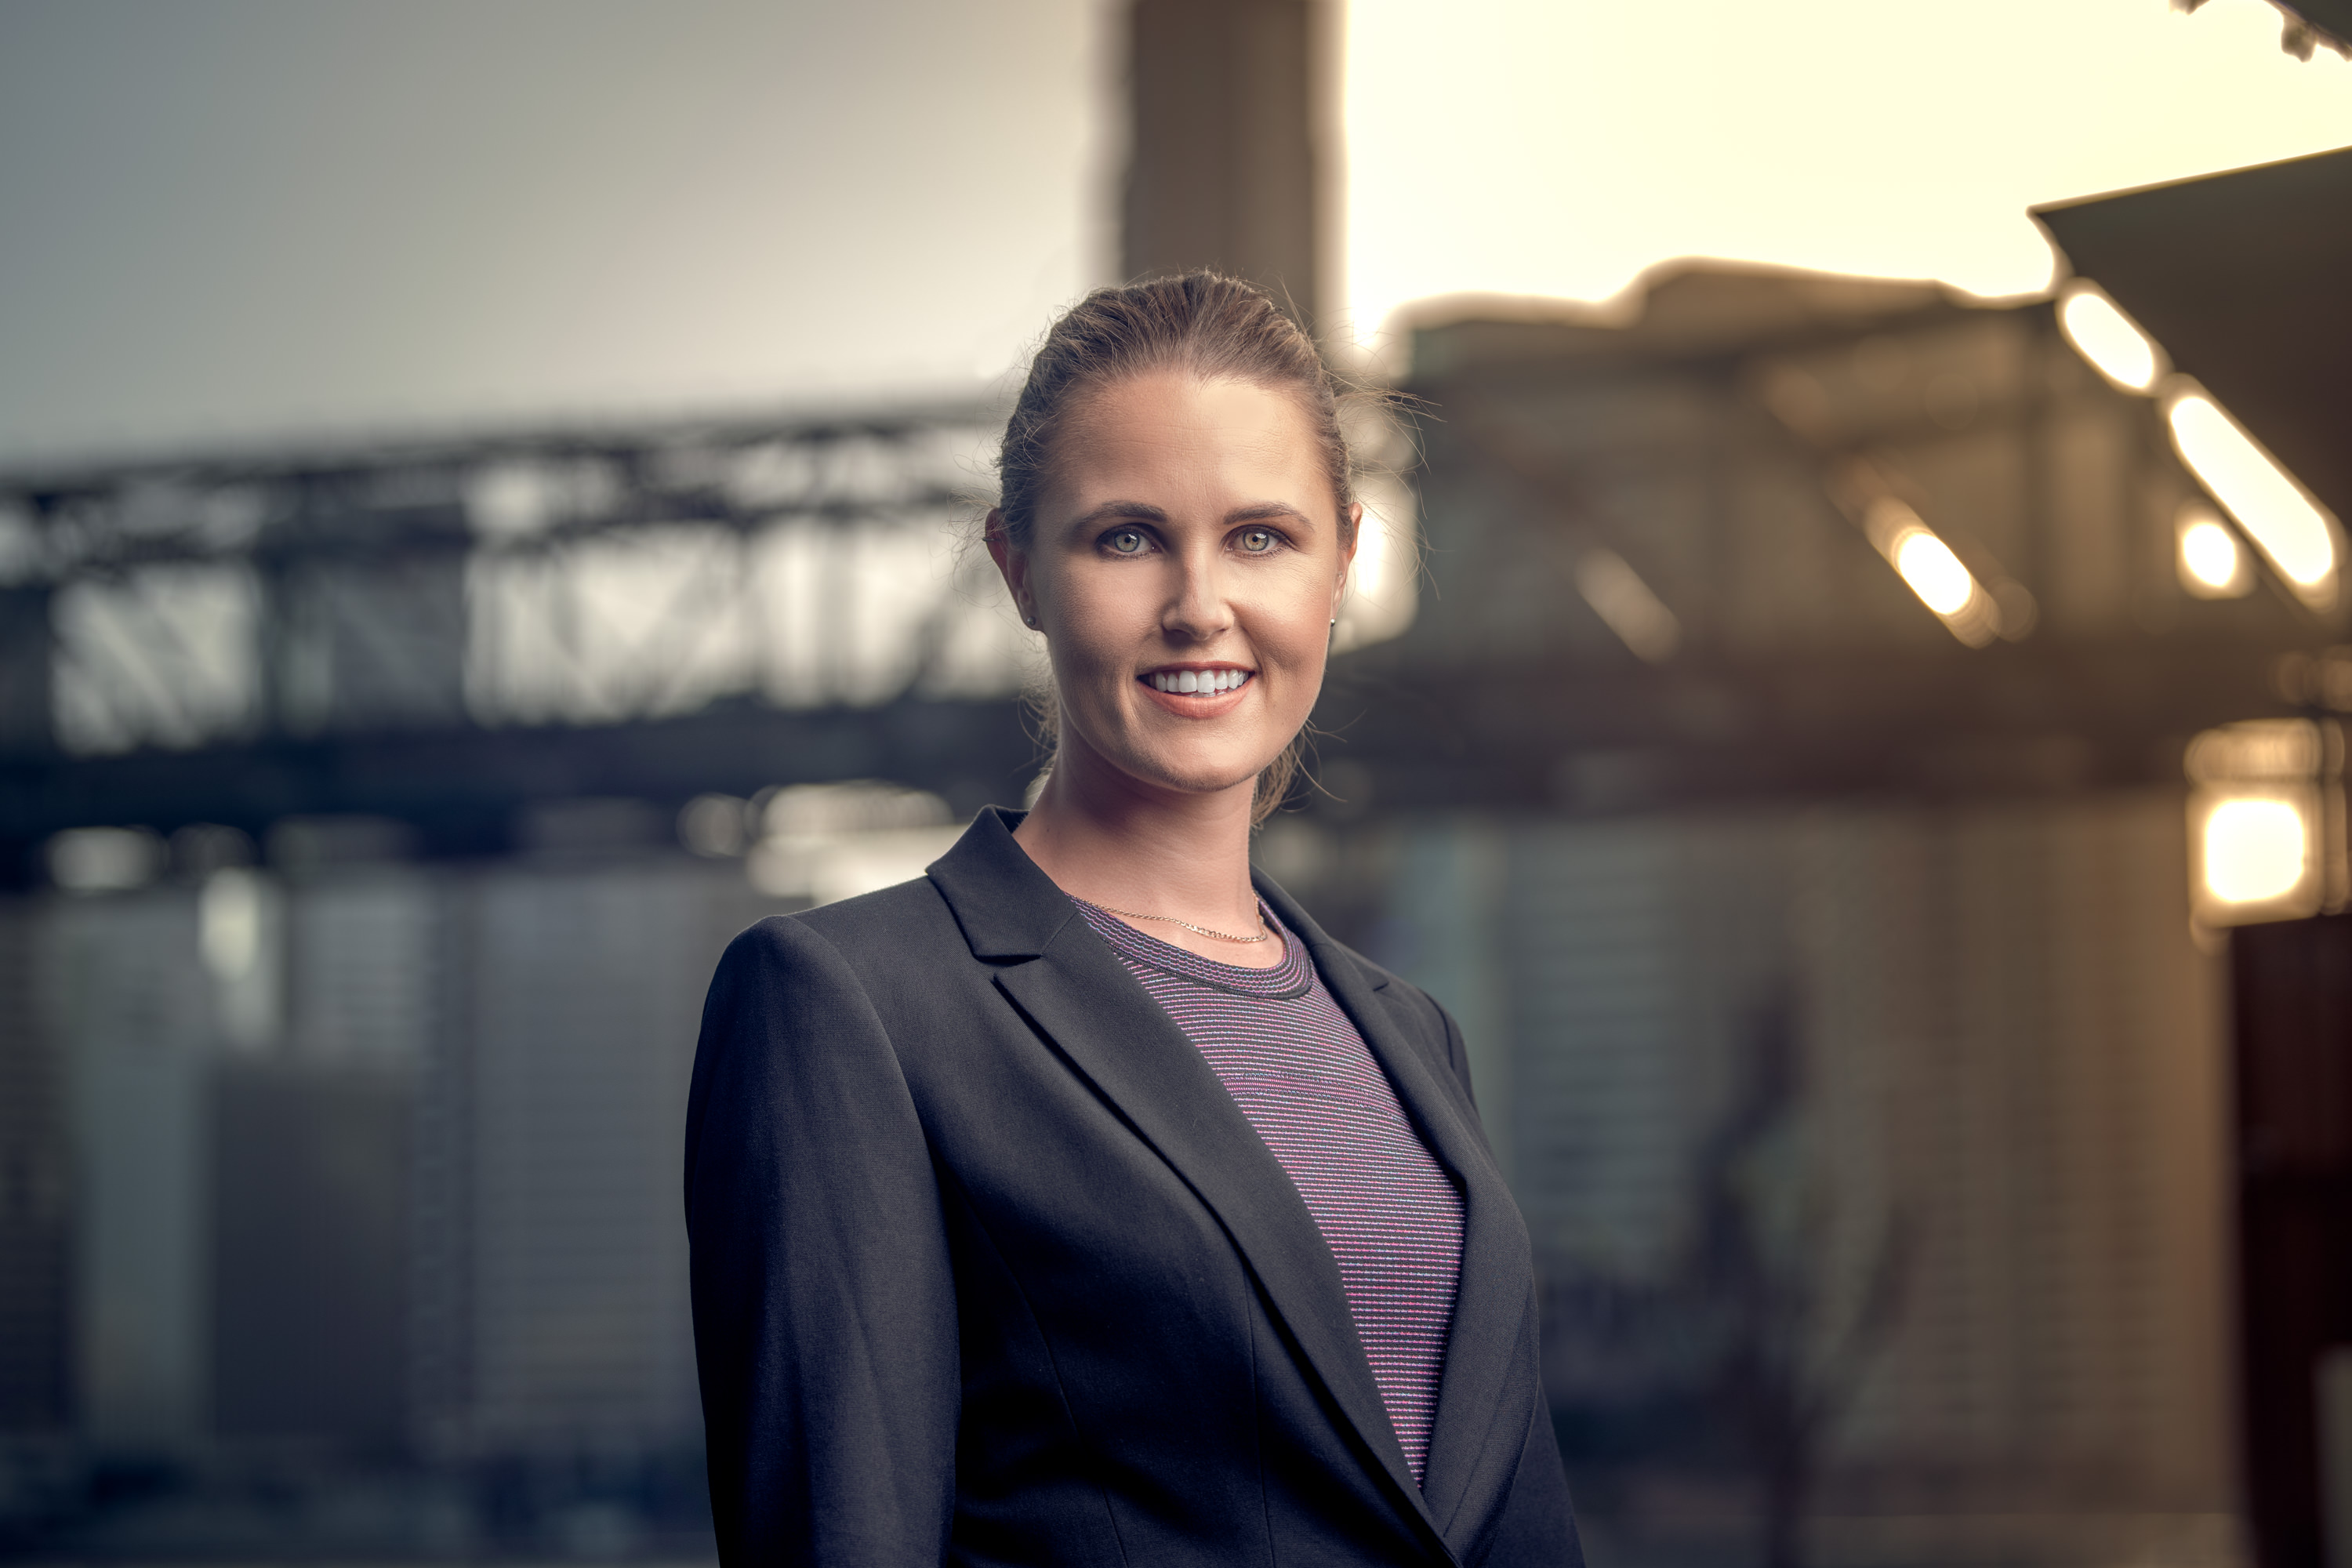 Corporate portrait of a businesswoman in Brisbane City. Headshot photographed by Brisbane photographer Joseph Byford.